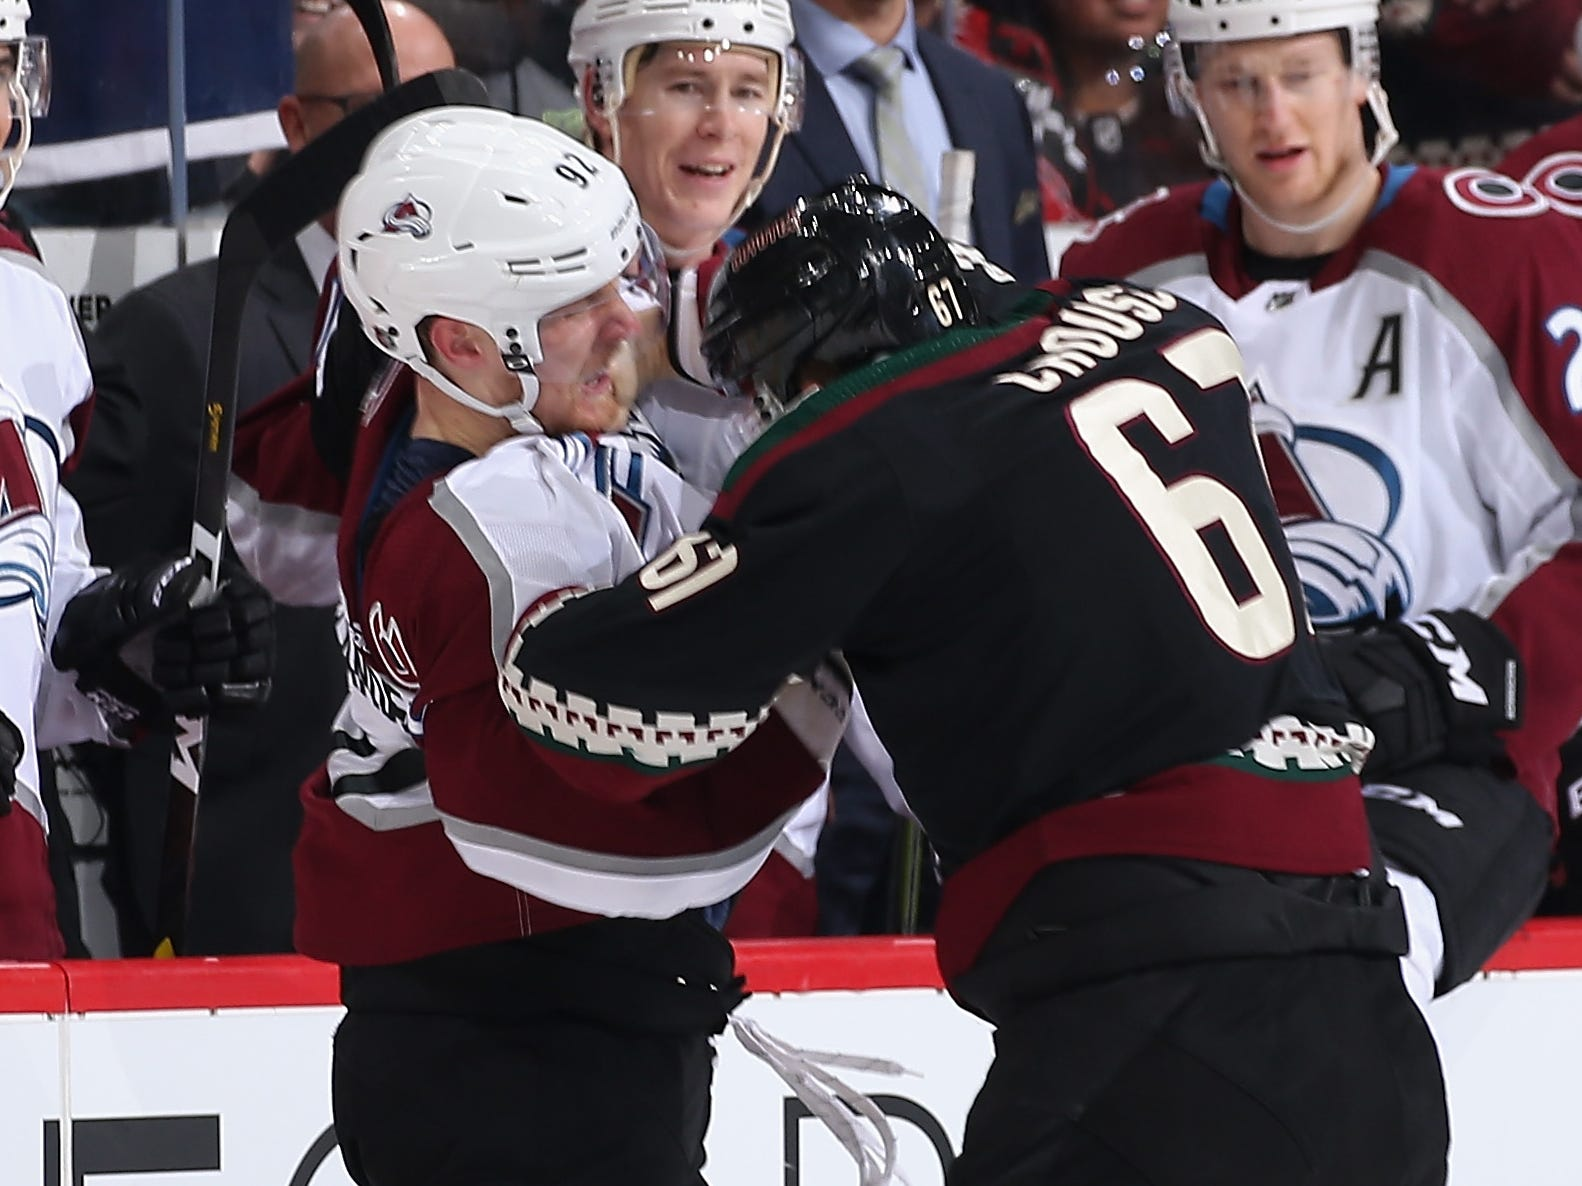 Dec. 22:  Colorado Avalanche's Gabriel Landeskog vs. Arizona Coyotes' Lawson Crouse